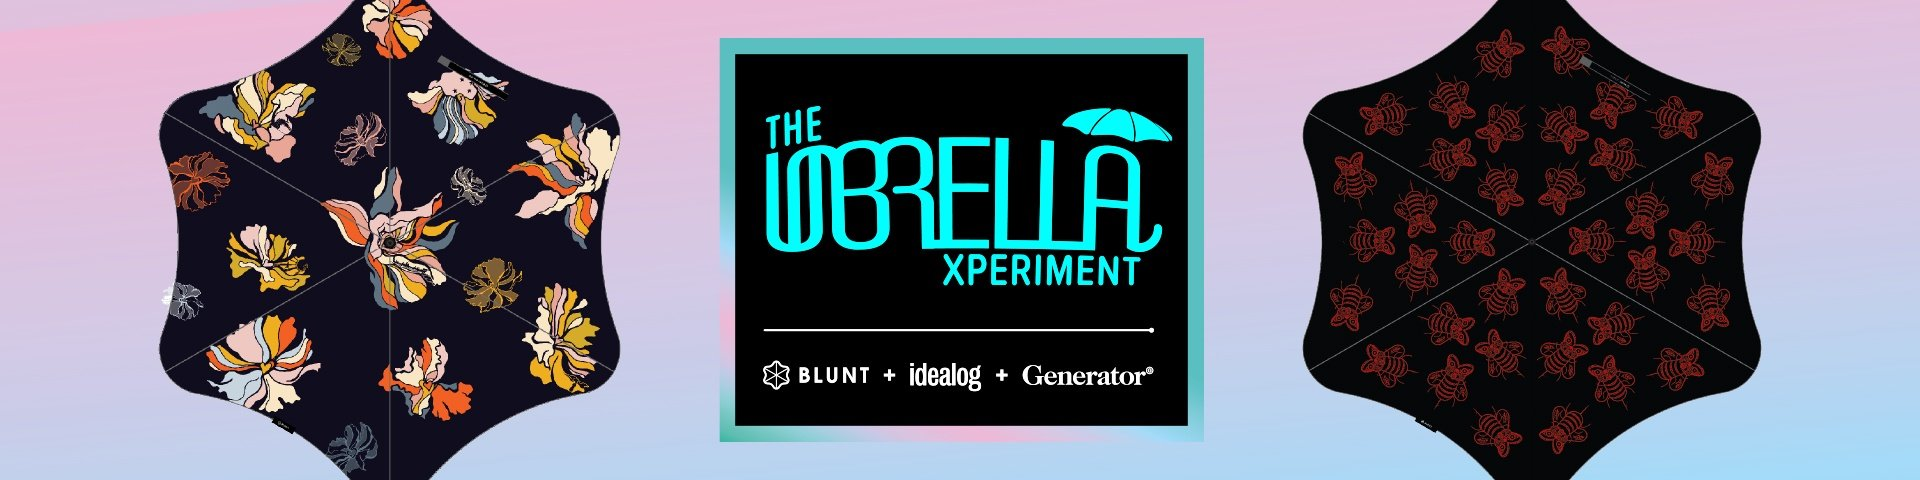 The Idealog + Blunt + Generator Umbrella Experiment